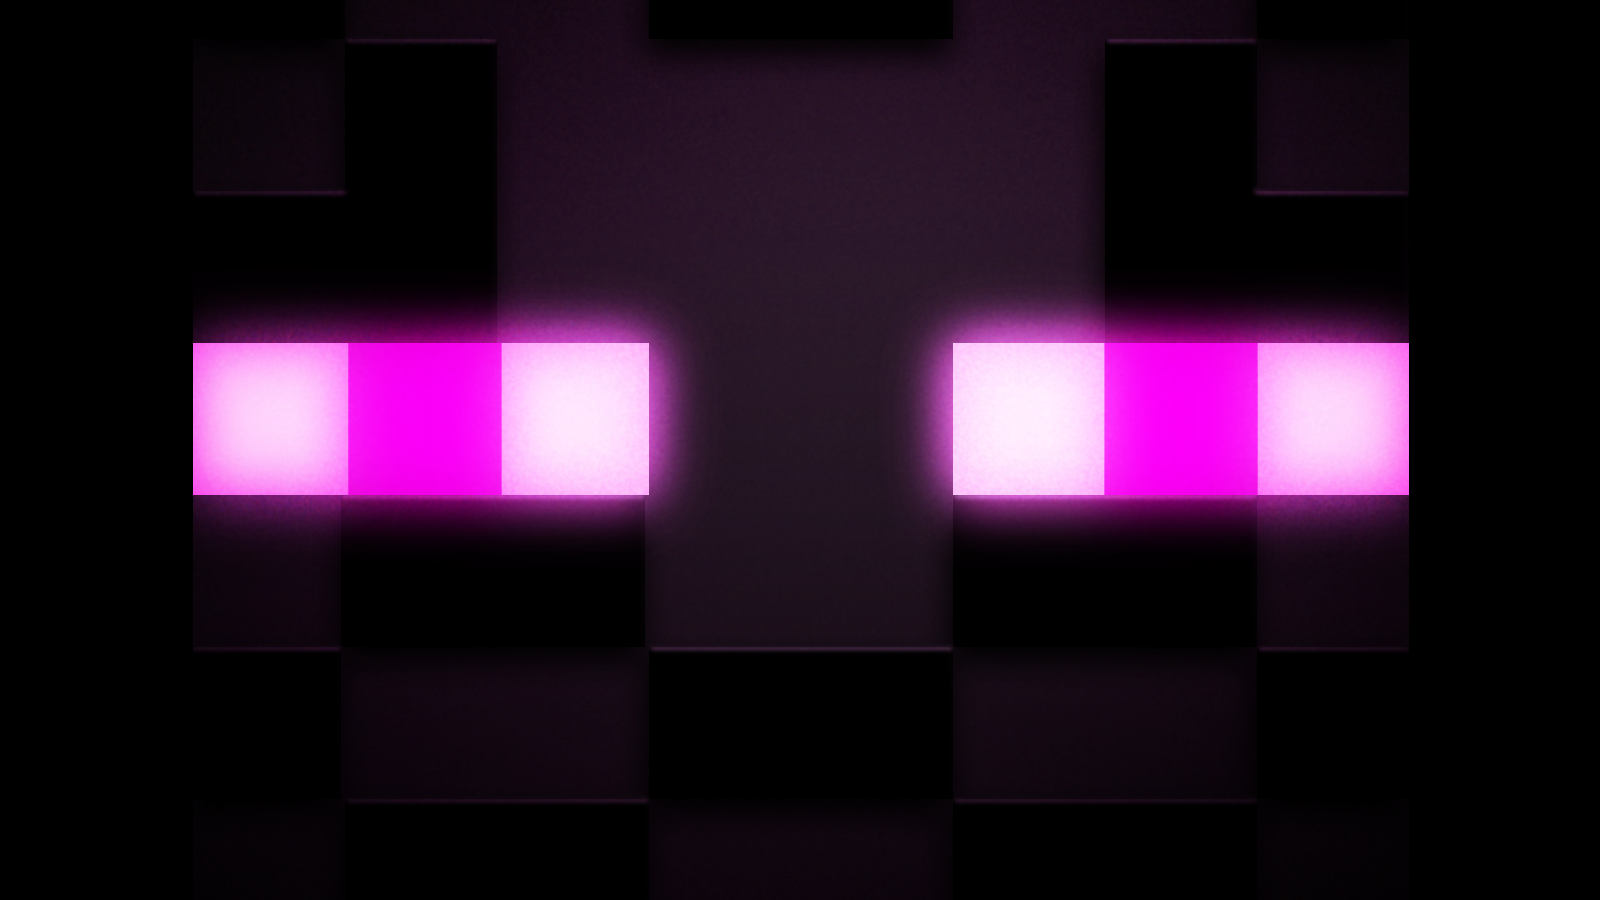 45 Minecraft Enderman Wallpaper On Wallpapersafari